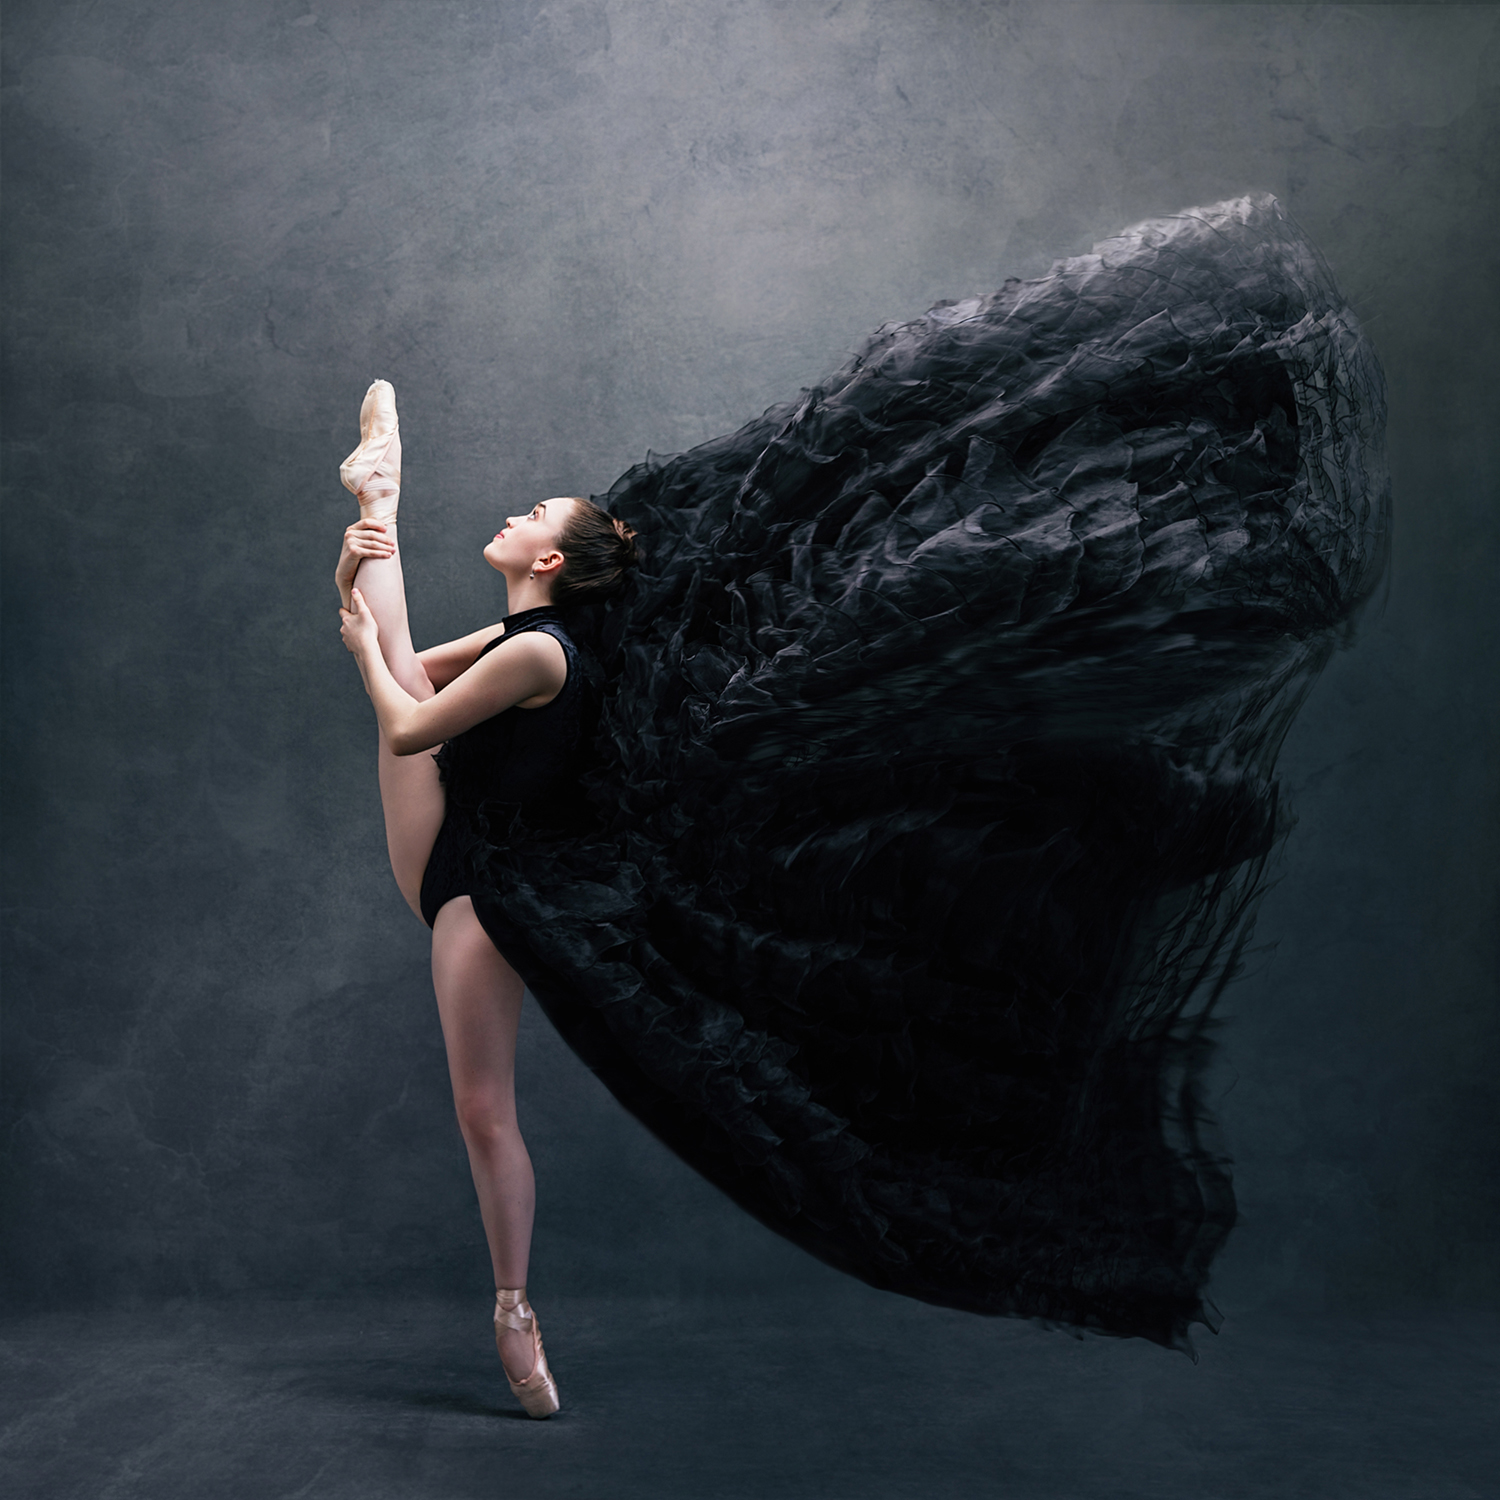 Fine Art Photography of dancer by Mayumi Acosta in Sacramento.jpg